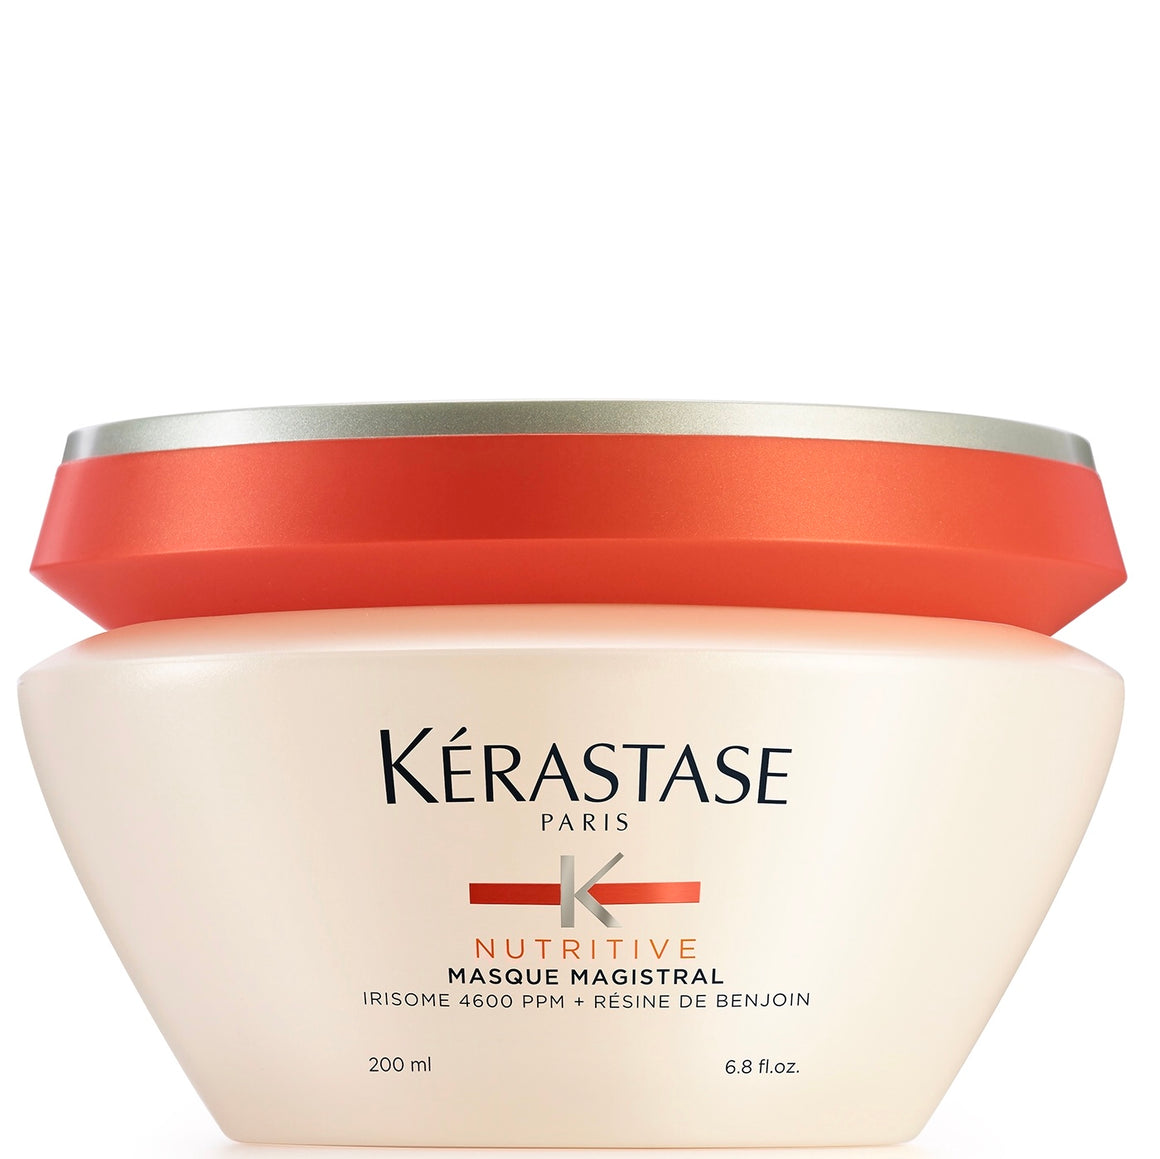 Kérastase Masque Magistral Hair Mask 200ml